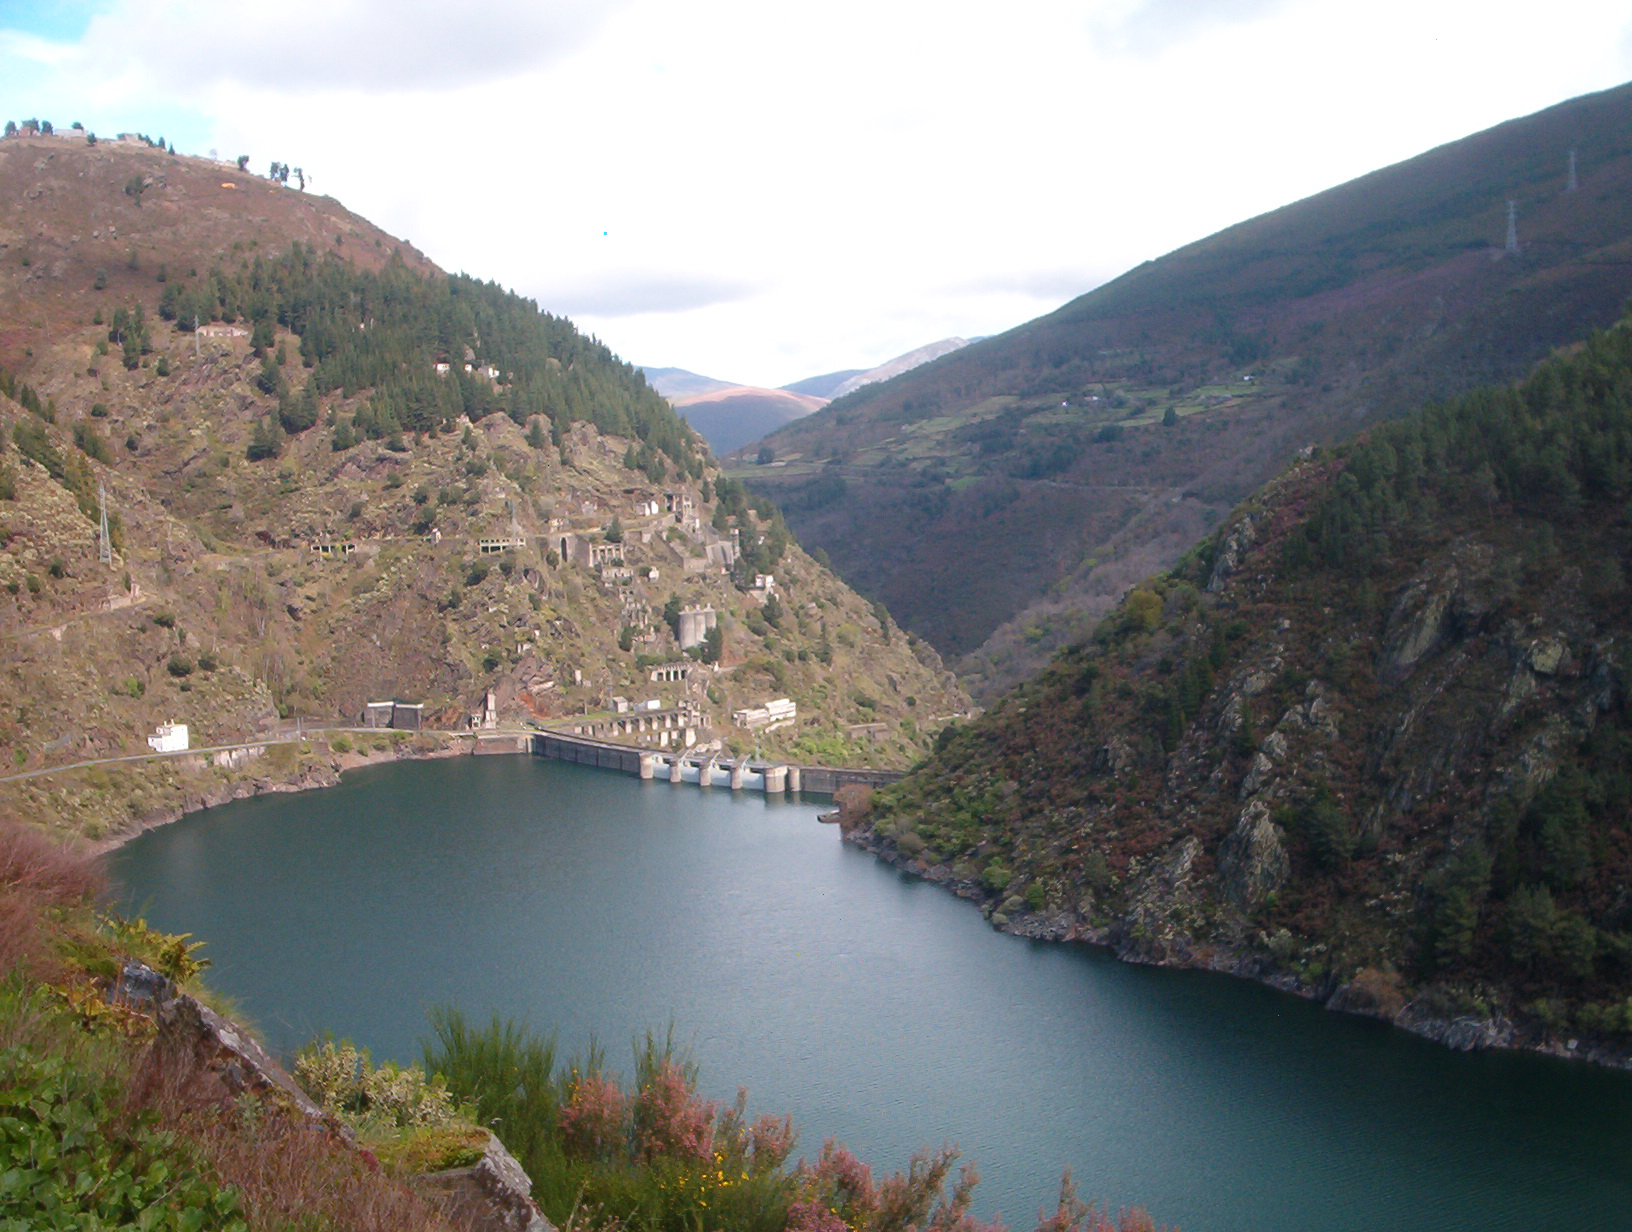 The Dam & Reservoir